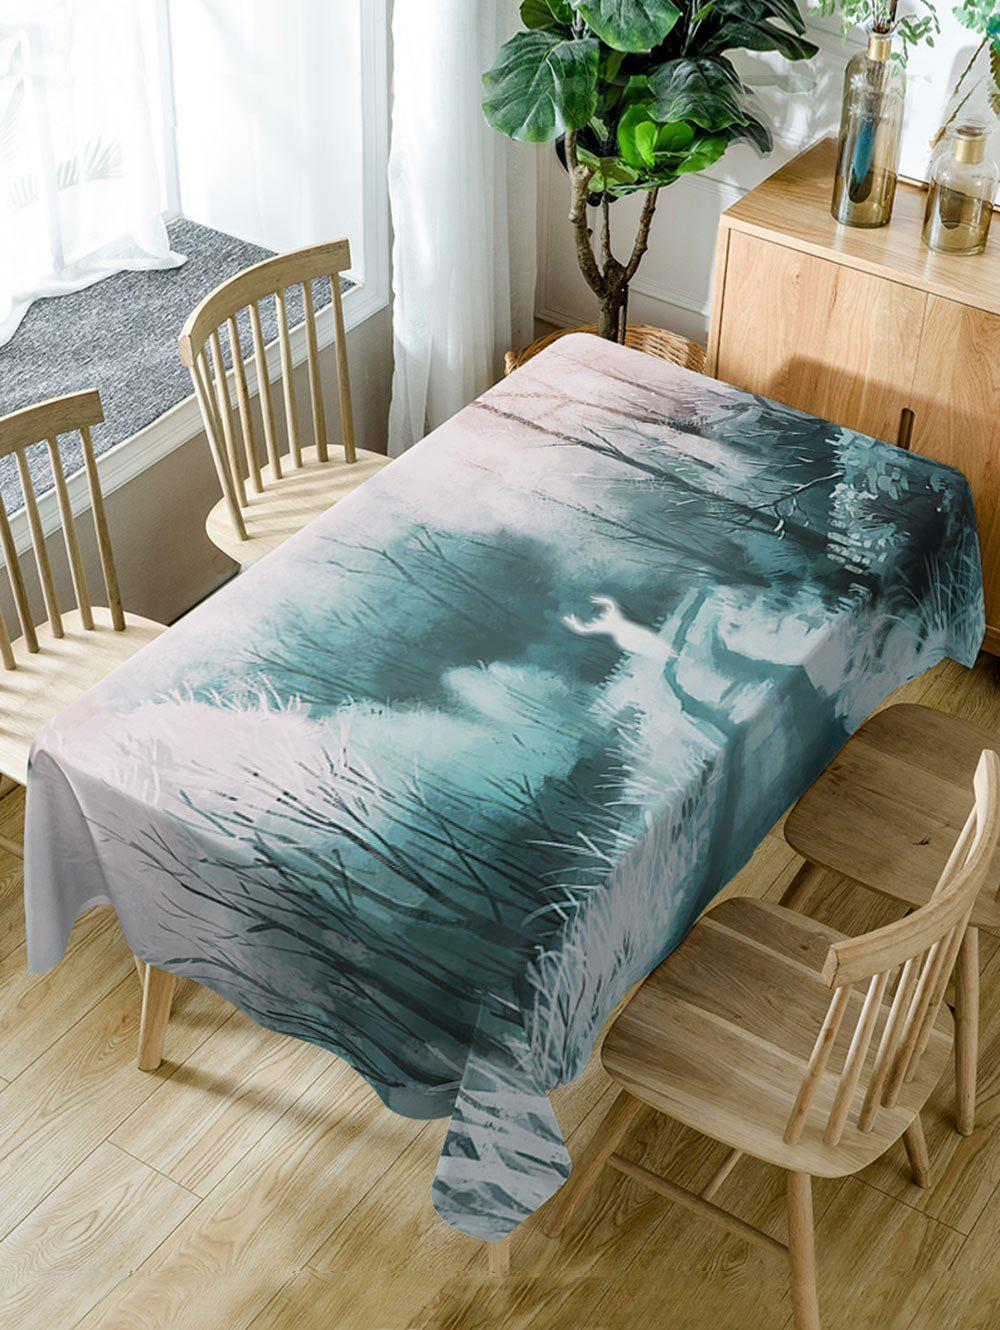 Forest Deer Print Waterproof Dining Table Cloth - COLORMIX W54 INCH * L54 INCH